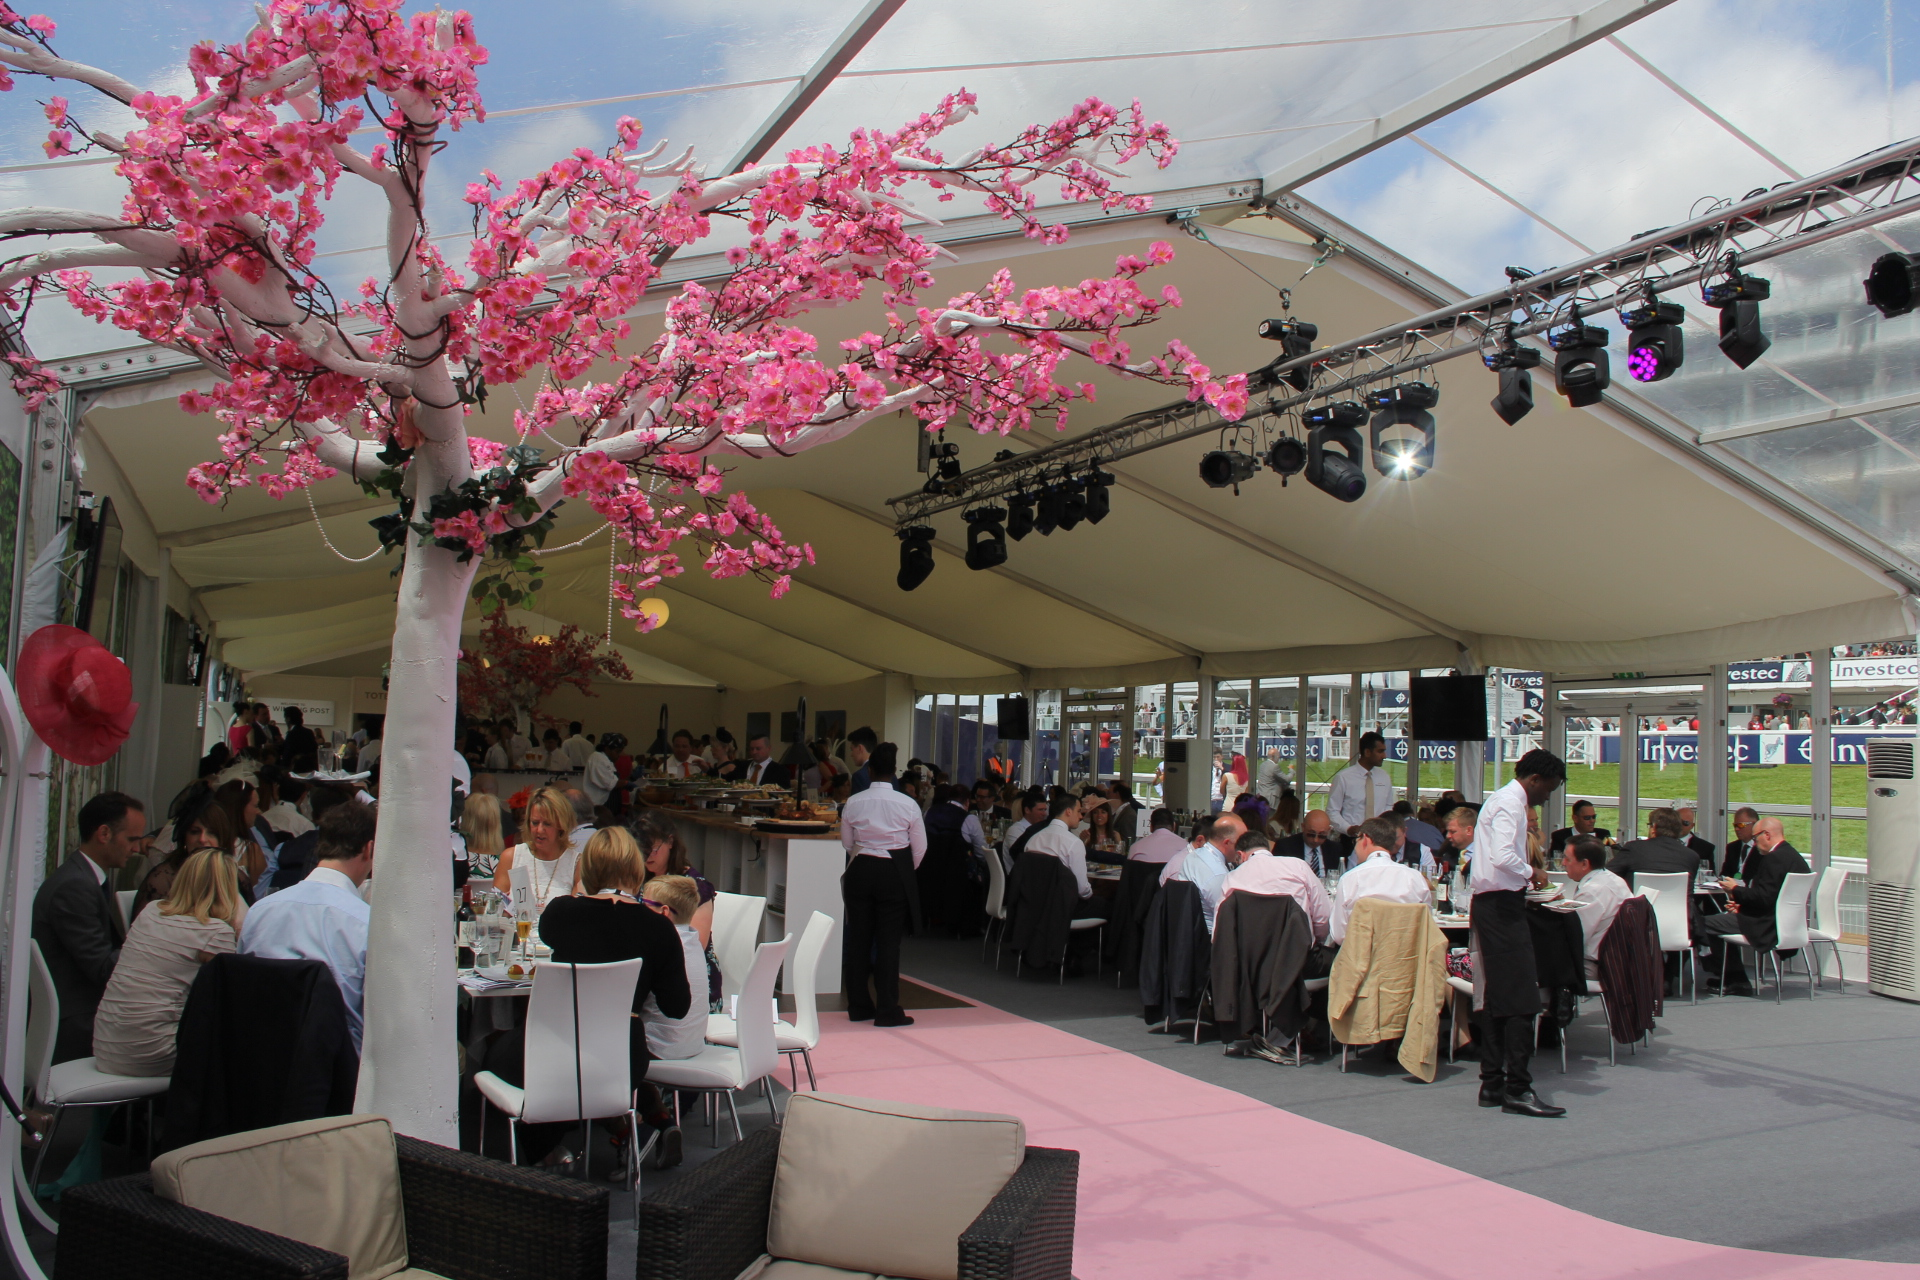 Investec Epsom Derby 2015 sound lighting vidoe and outdoor staging production